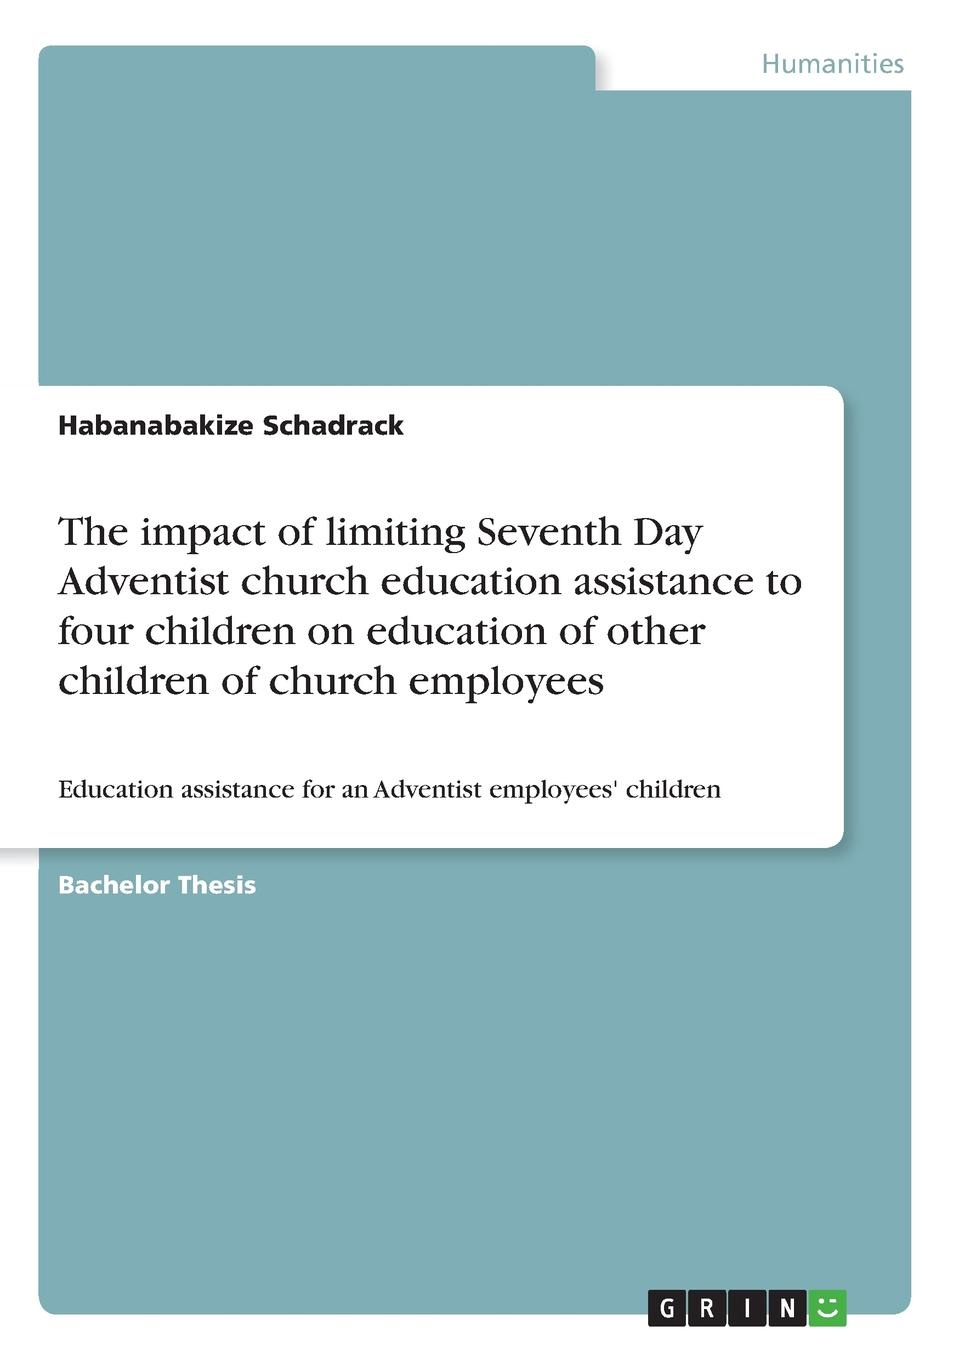 Habanabakize Schadrack The impact of limiting Seventh Day Adventist church education assistance to four children on education of other children of church employees dave browning hybrid church the fusion of intimacy and impact